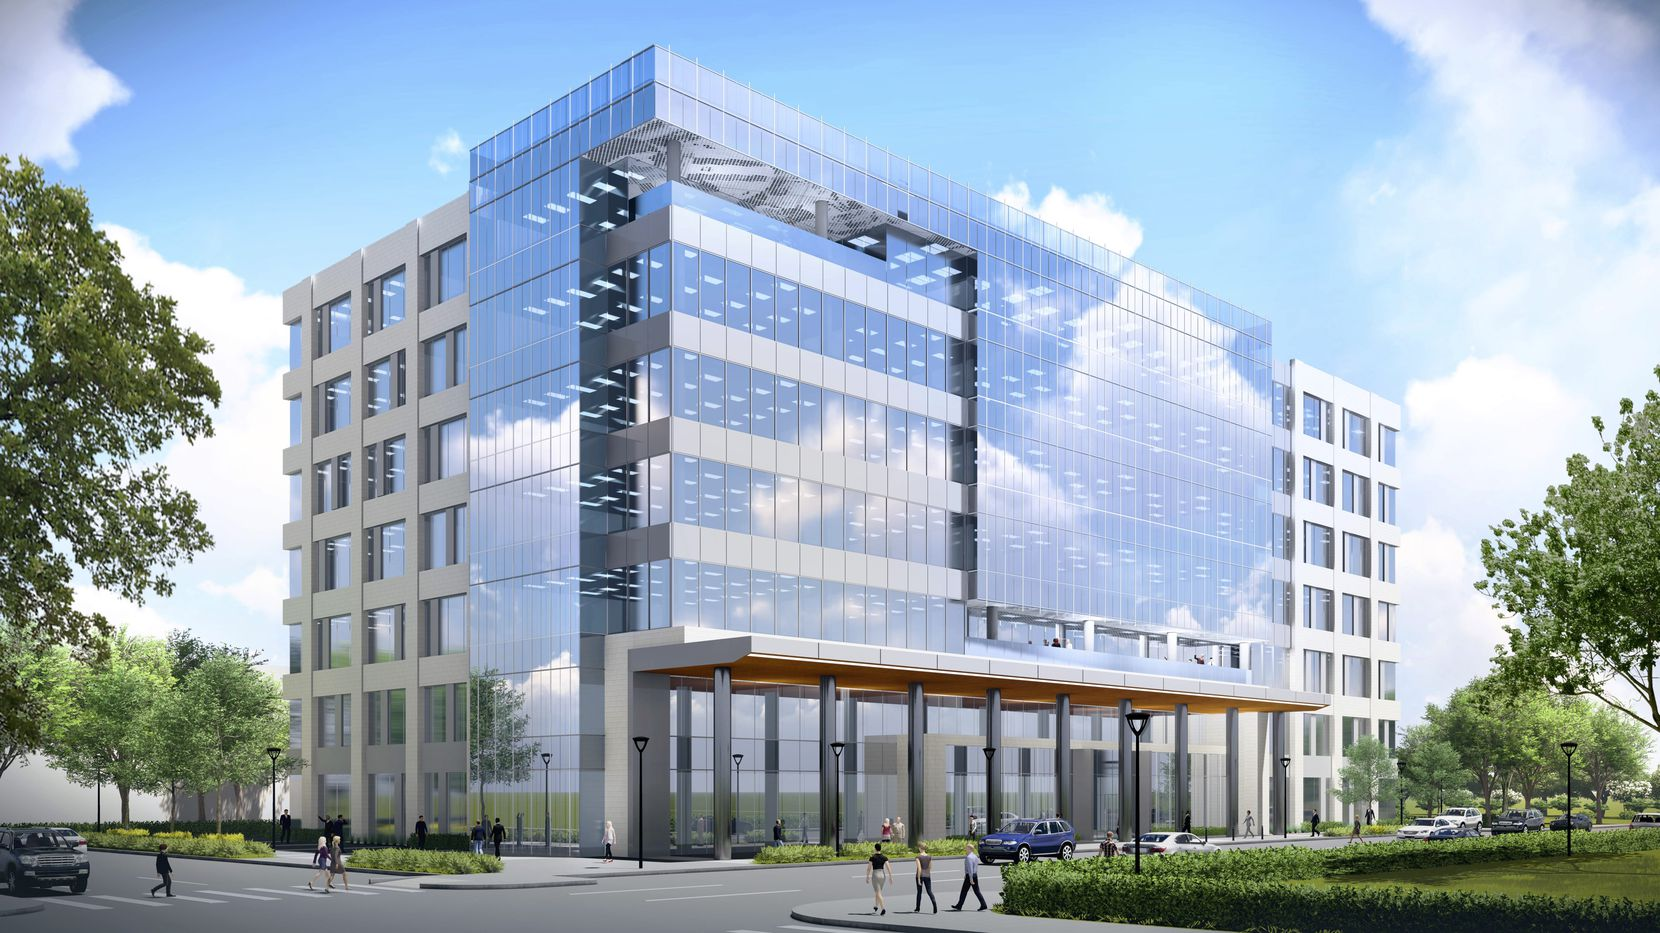 The Legacy South office building will open in early 2019.